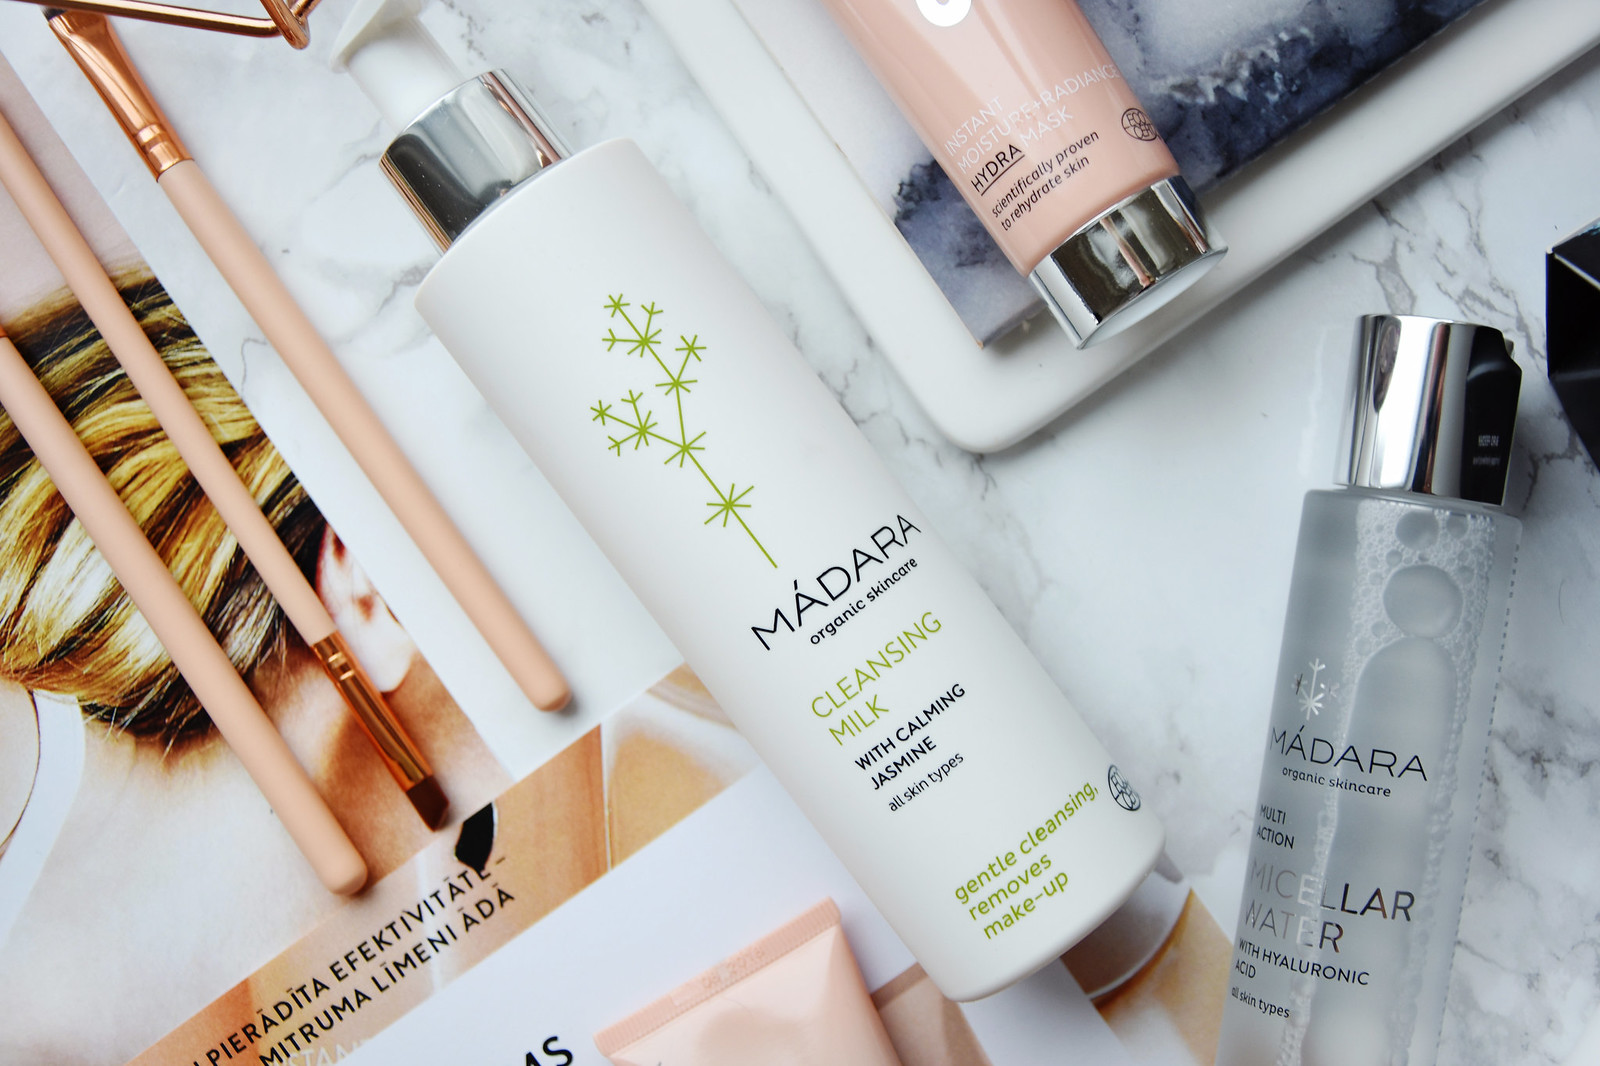 MADARA Cosmetics cleansing milk review